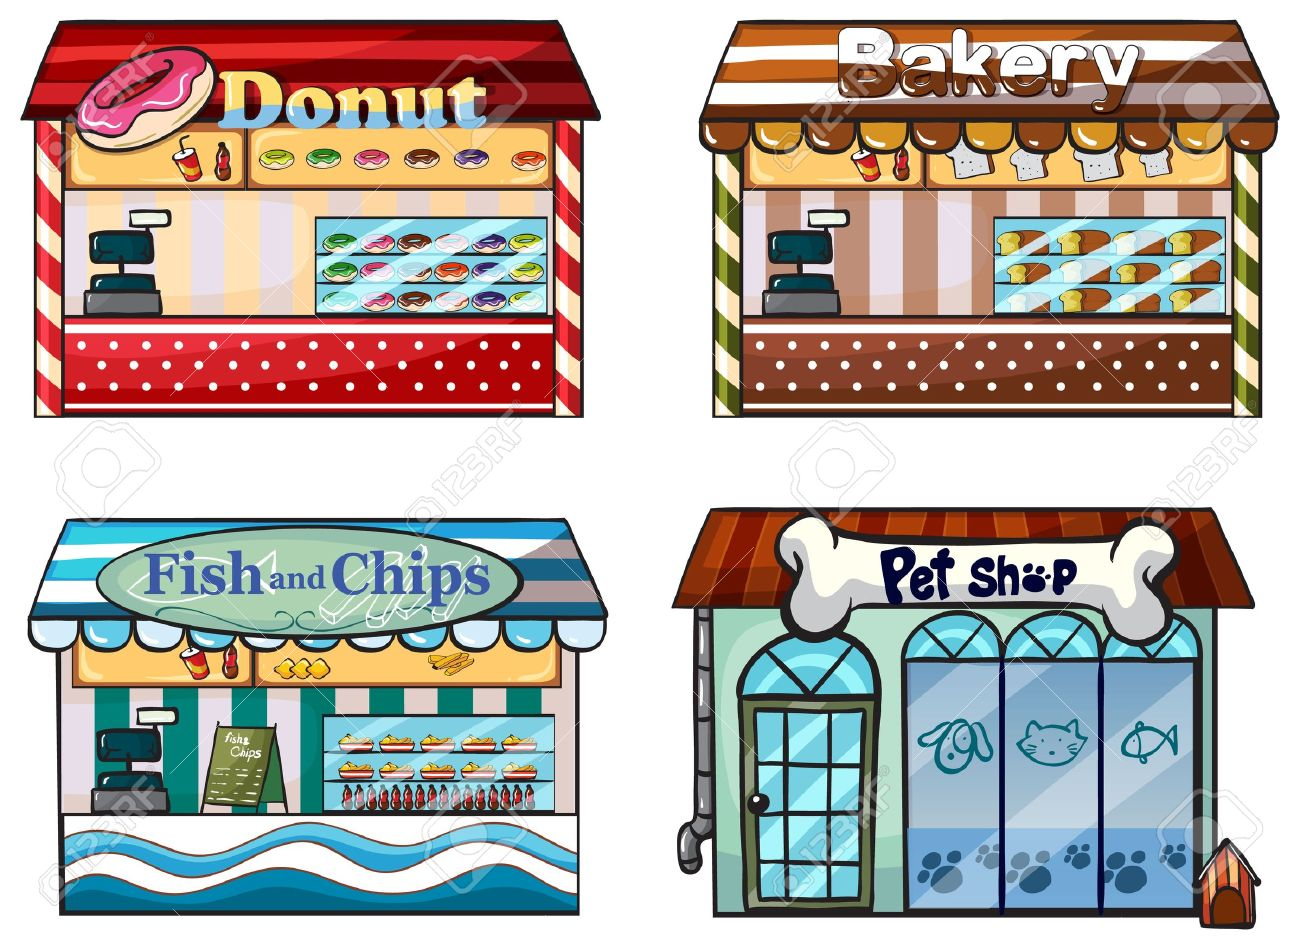 Illustration of a donut store, bakery, fish and chips store and a pet shop on a white background Stock Vector - 17521864